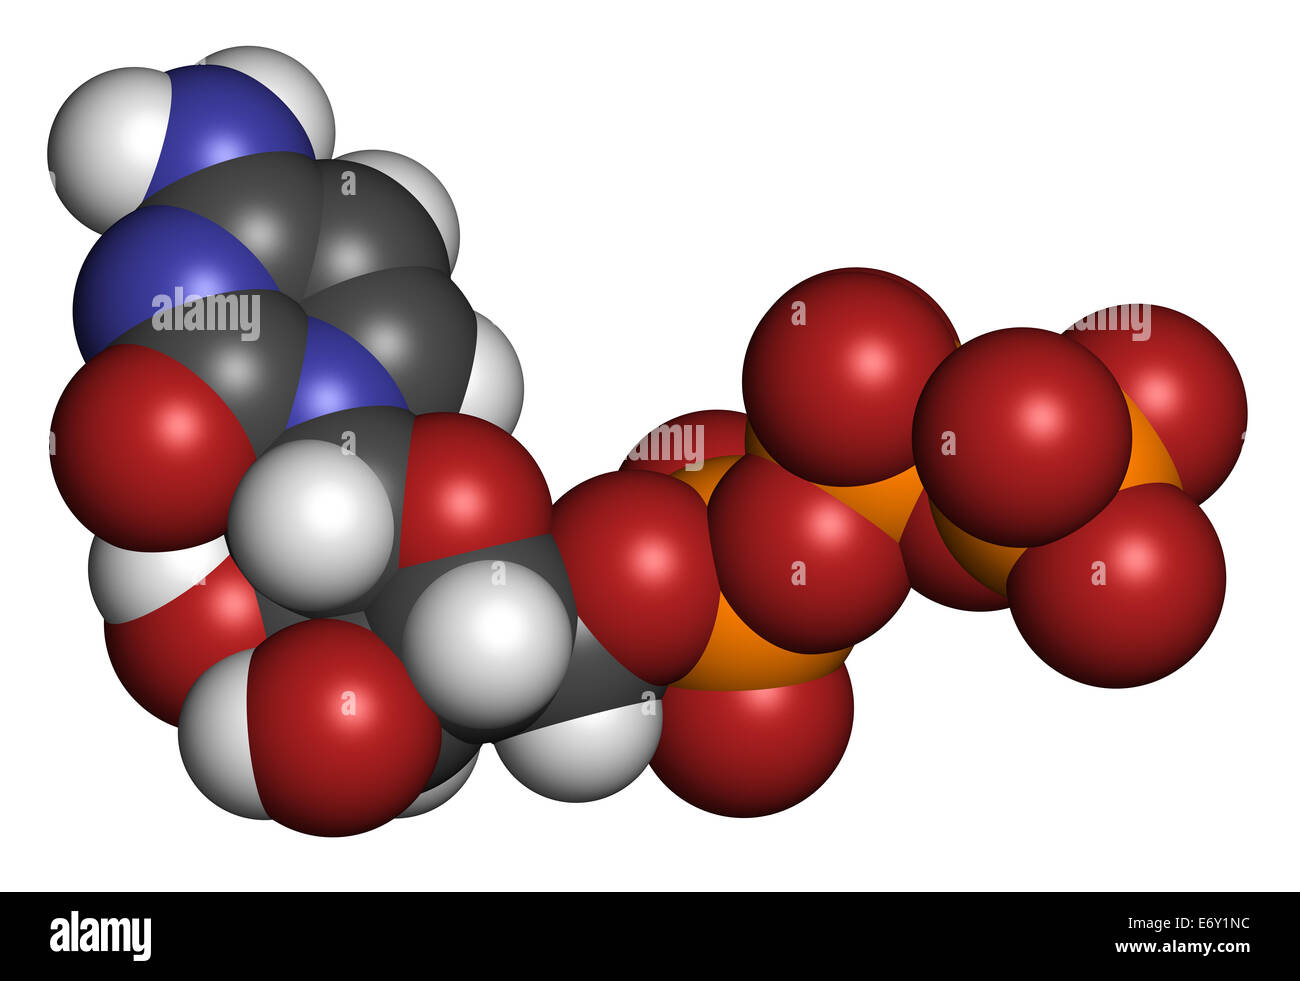 Cytidine triphosphate (CTP) RNA building block molecule. Also functions as cofactor to some enzymes. Atoms are represented Stock Photo